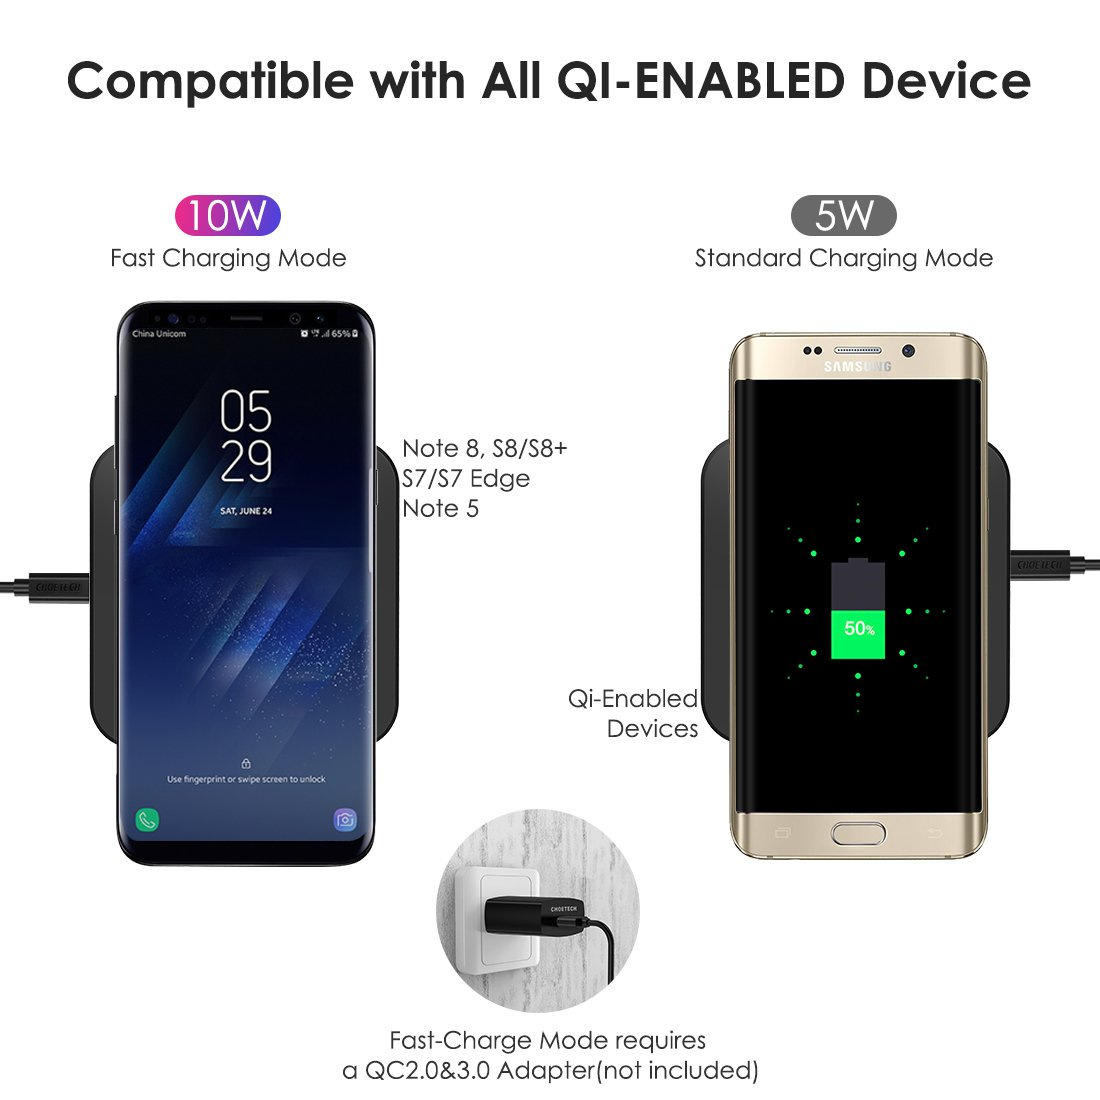 CHOETECH 10W Fast Wireless Charger Compatible Samsung Galaxy S9, S9 S8 Plus,Note 8, S8, S7, S7 Edge, Standard Wireless Charging Pad Compatible iPhone X, 8, 8 Plus (No AC Adapter) by CHOETECH (Image #3)